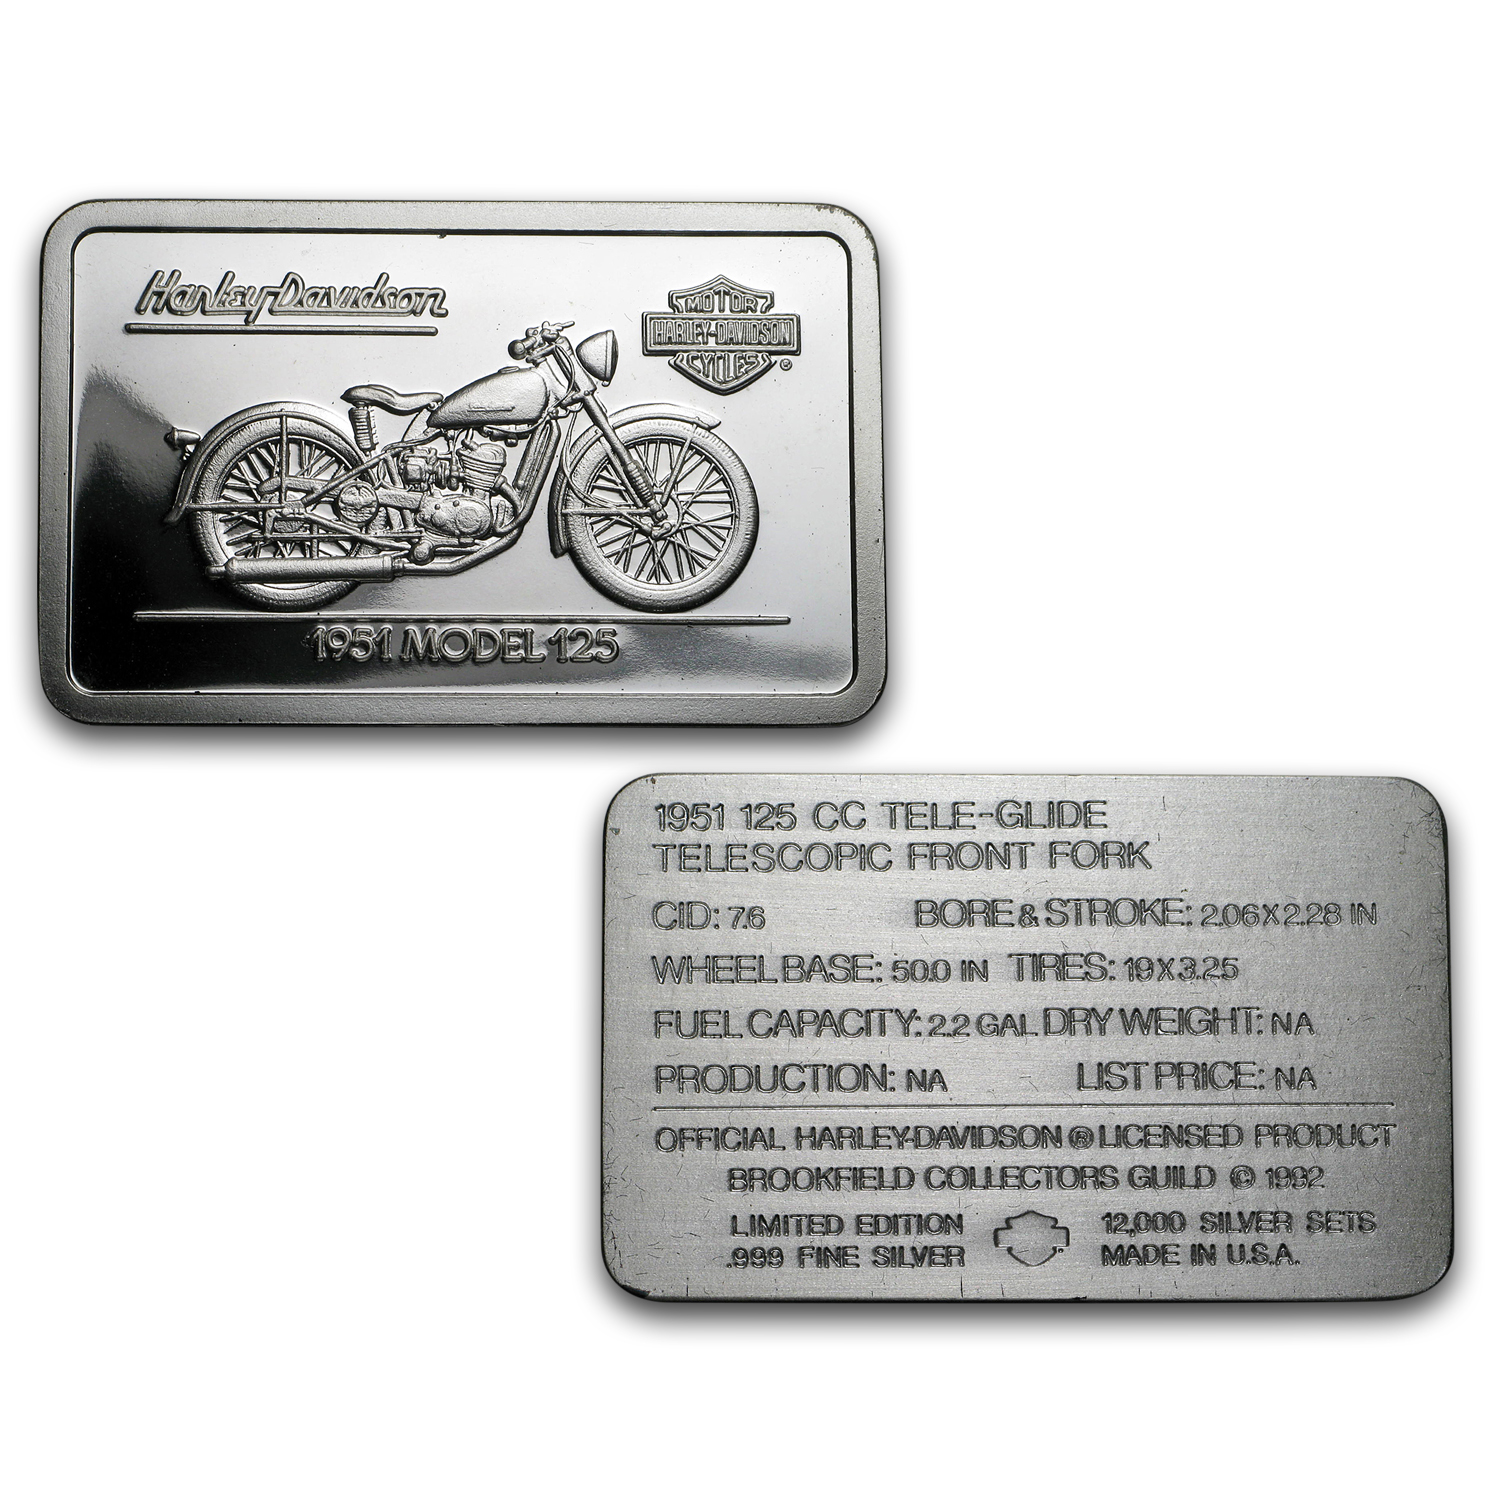 (24) 1.4 oz Silver Bar - 90th Anniv. HARLEY DAVIDSON (Set)